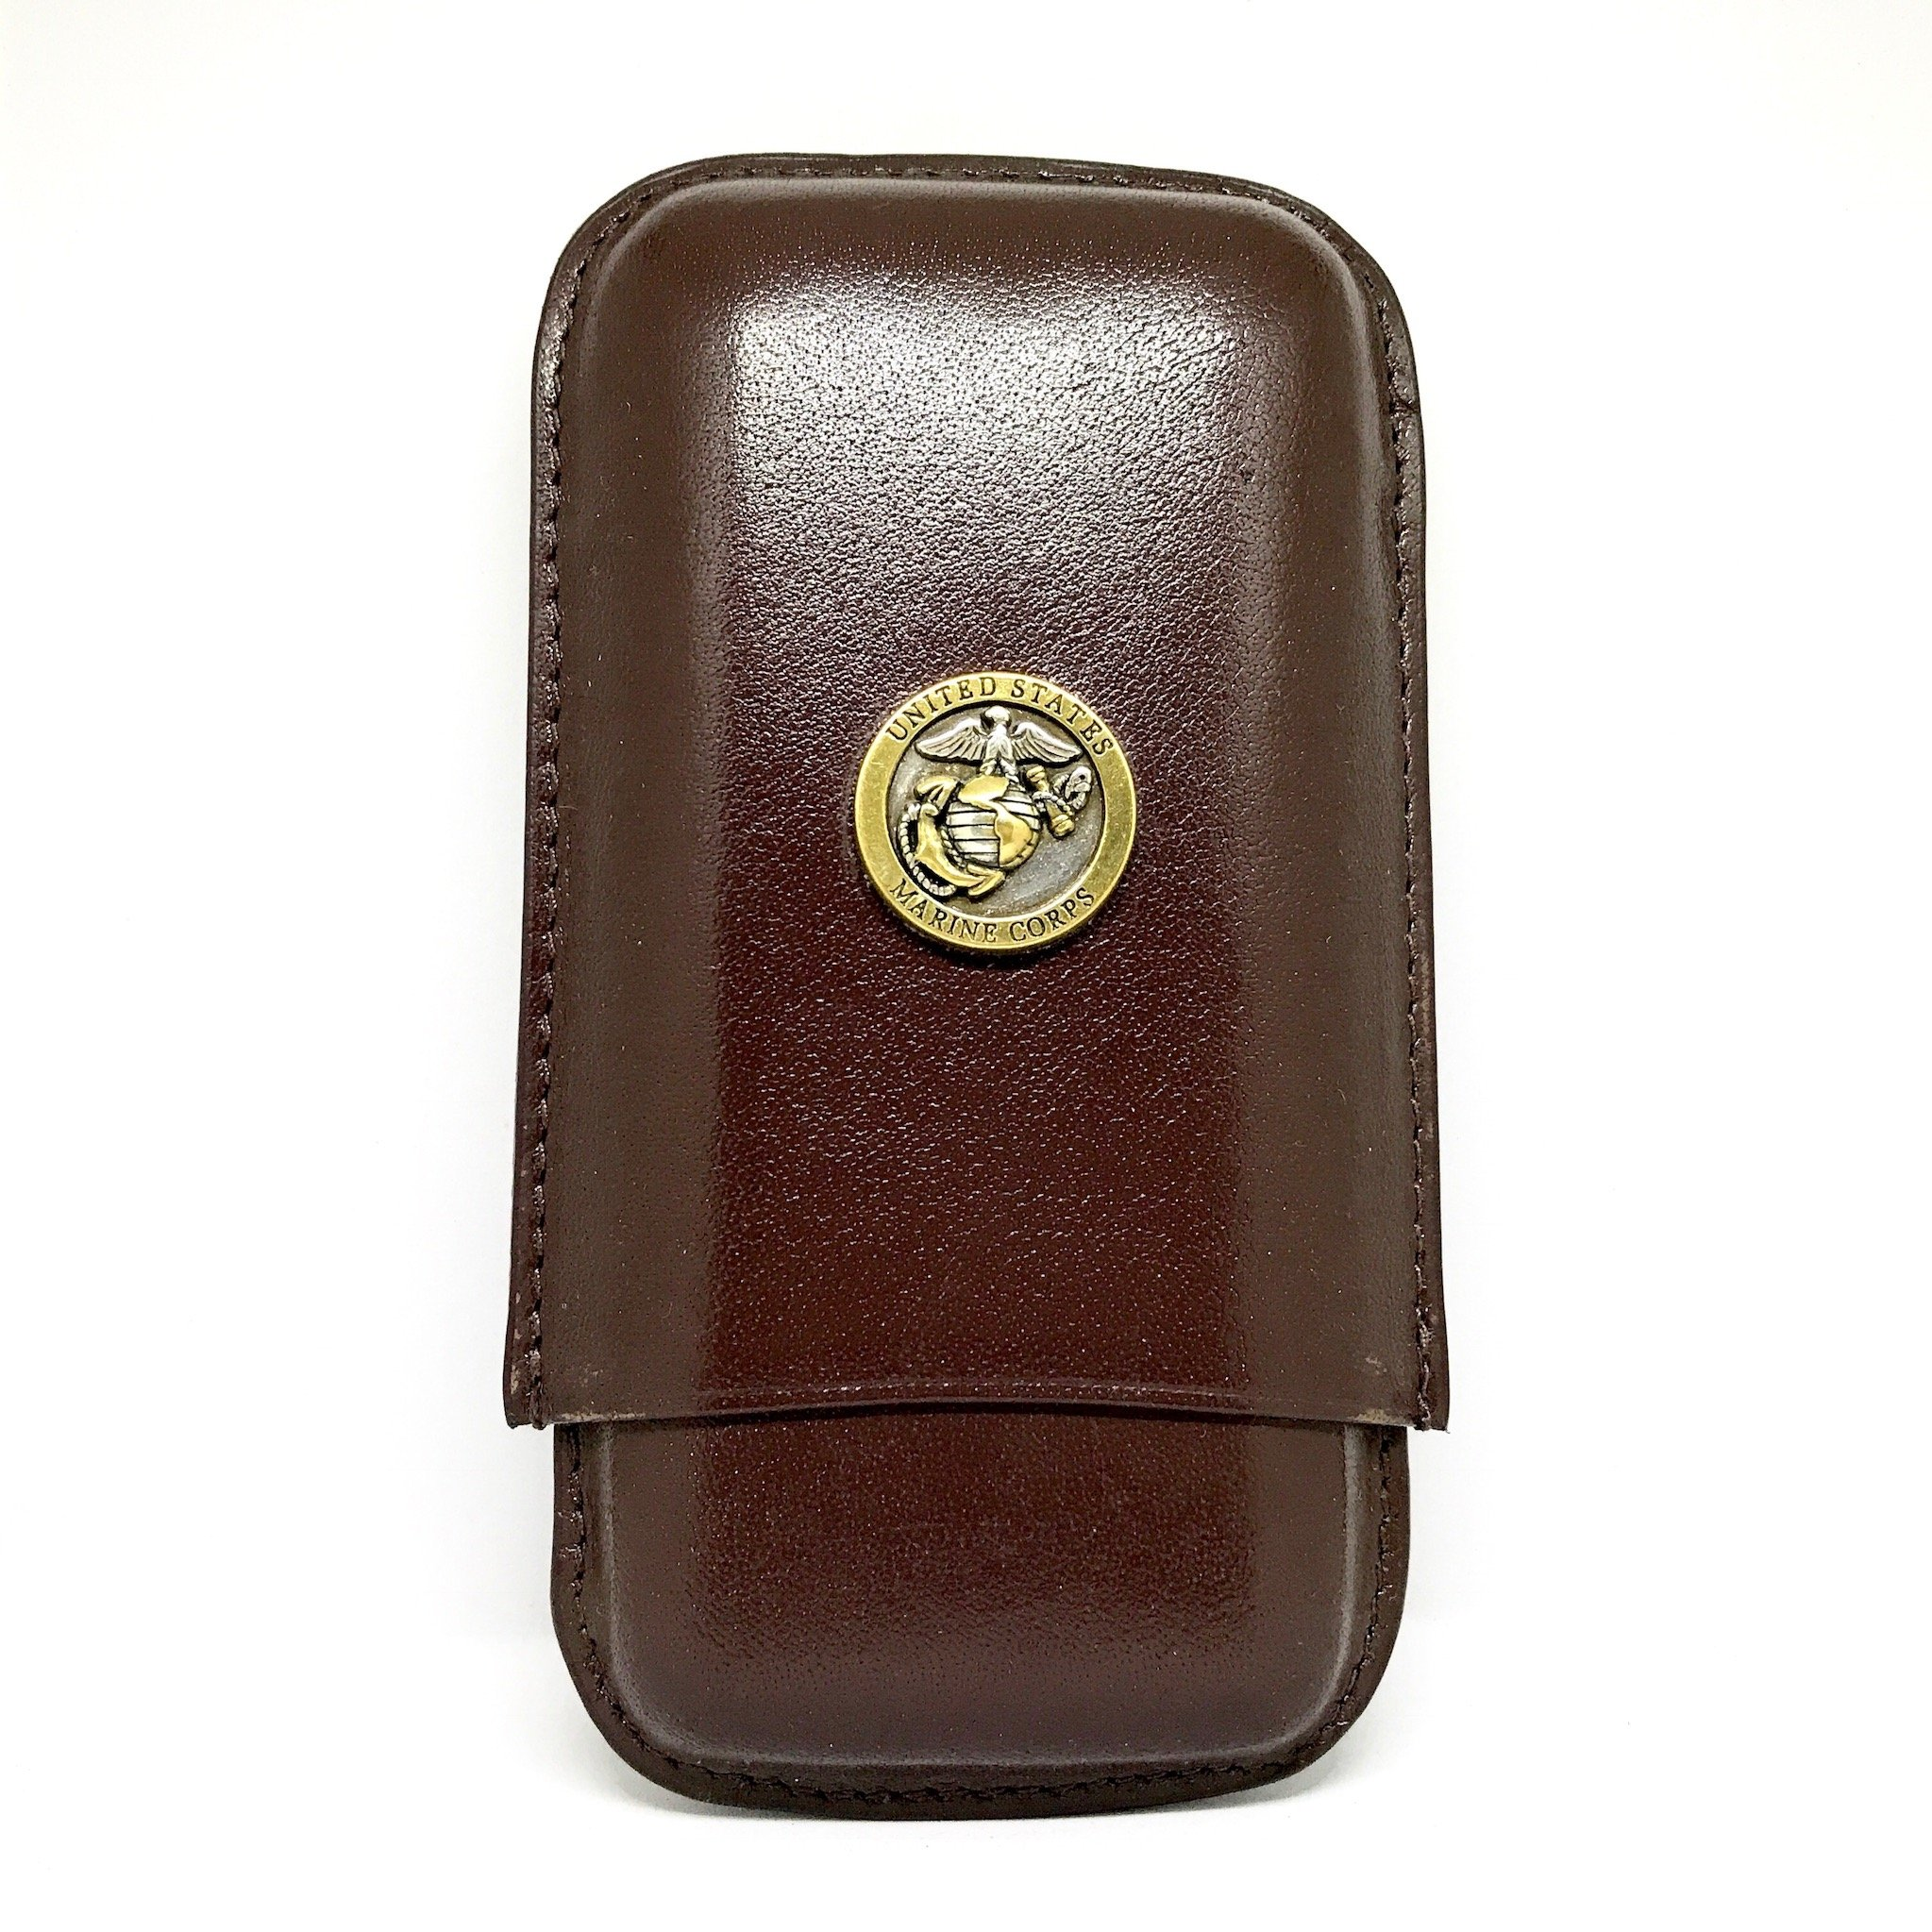 Genuine Leather US Marines Cigar Case 3-Finger with 3 Cigar Holders - Pocket-Sized Cigar Case for Travel, Gifts for Men by Cigar Cutters by Jim (Brown)